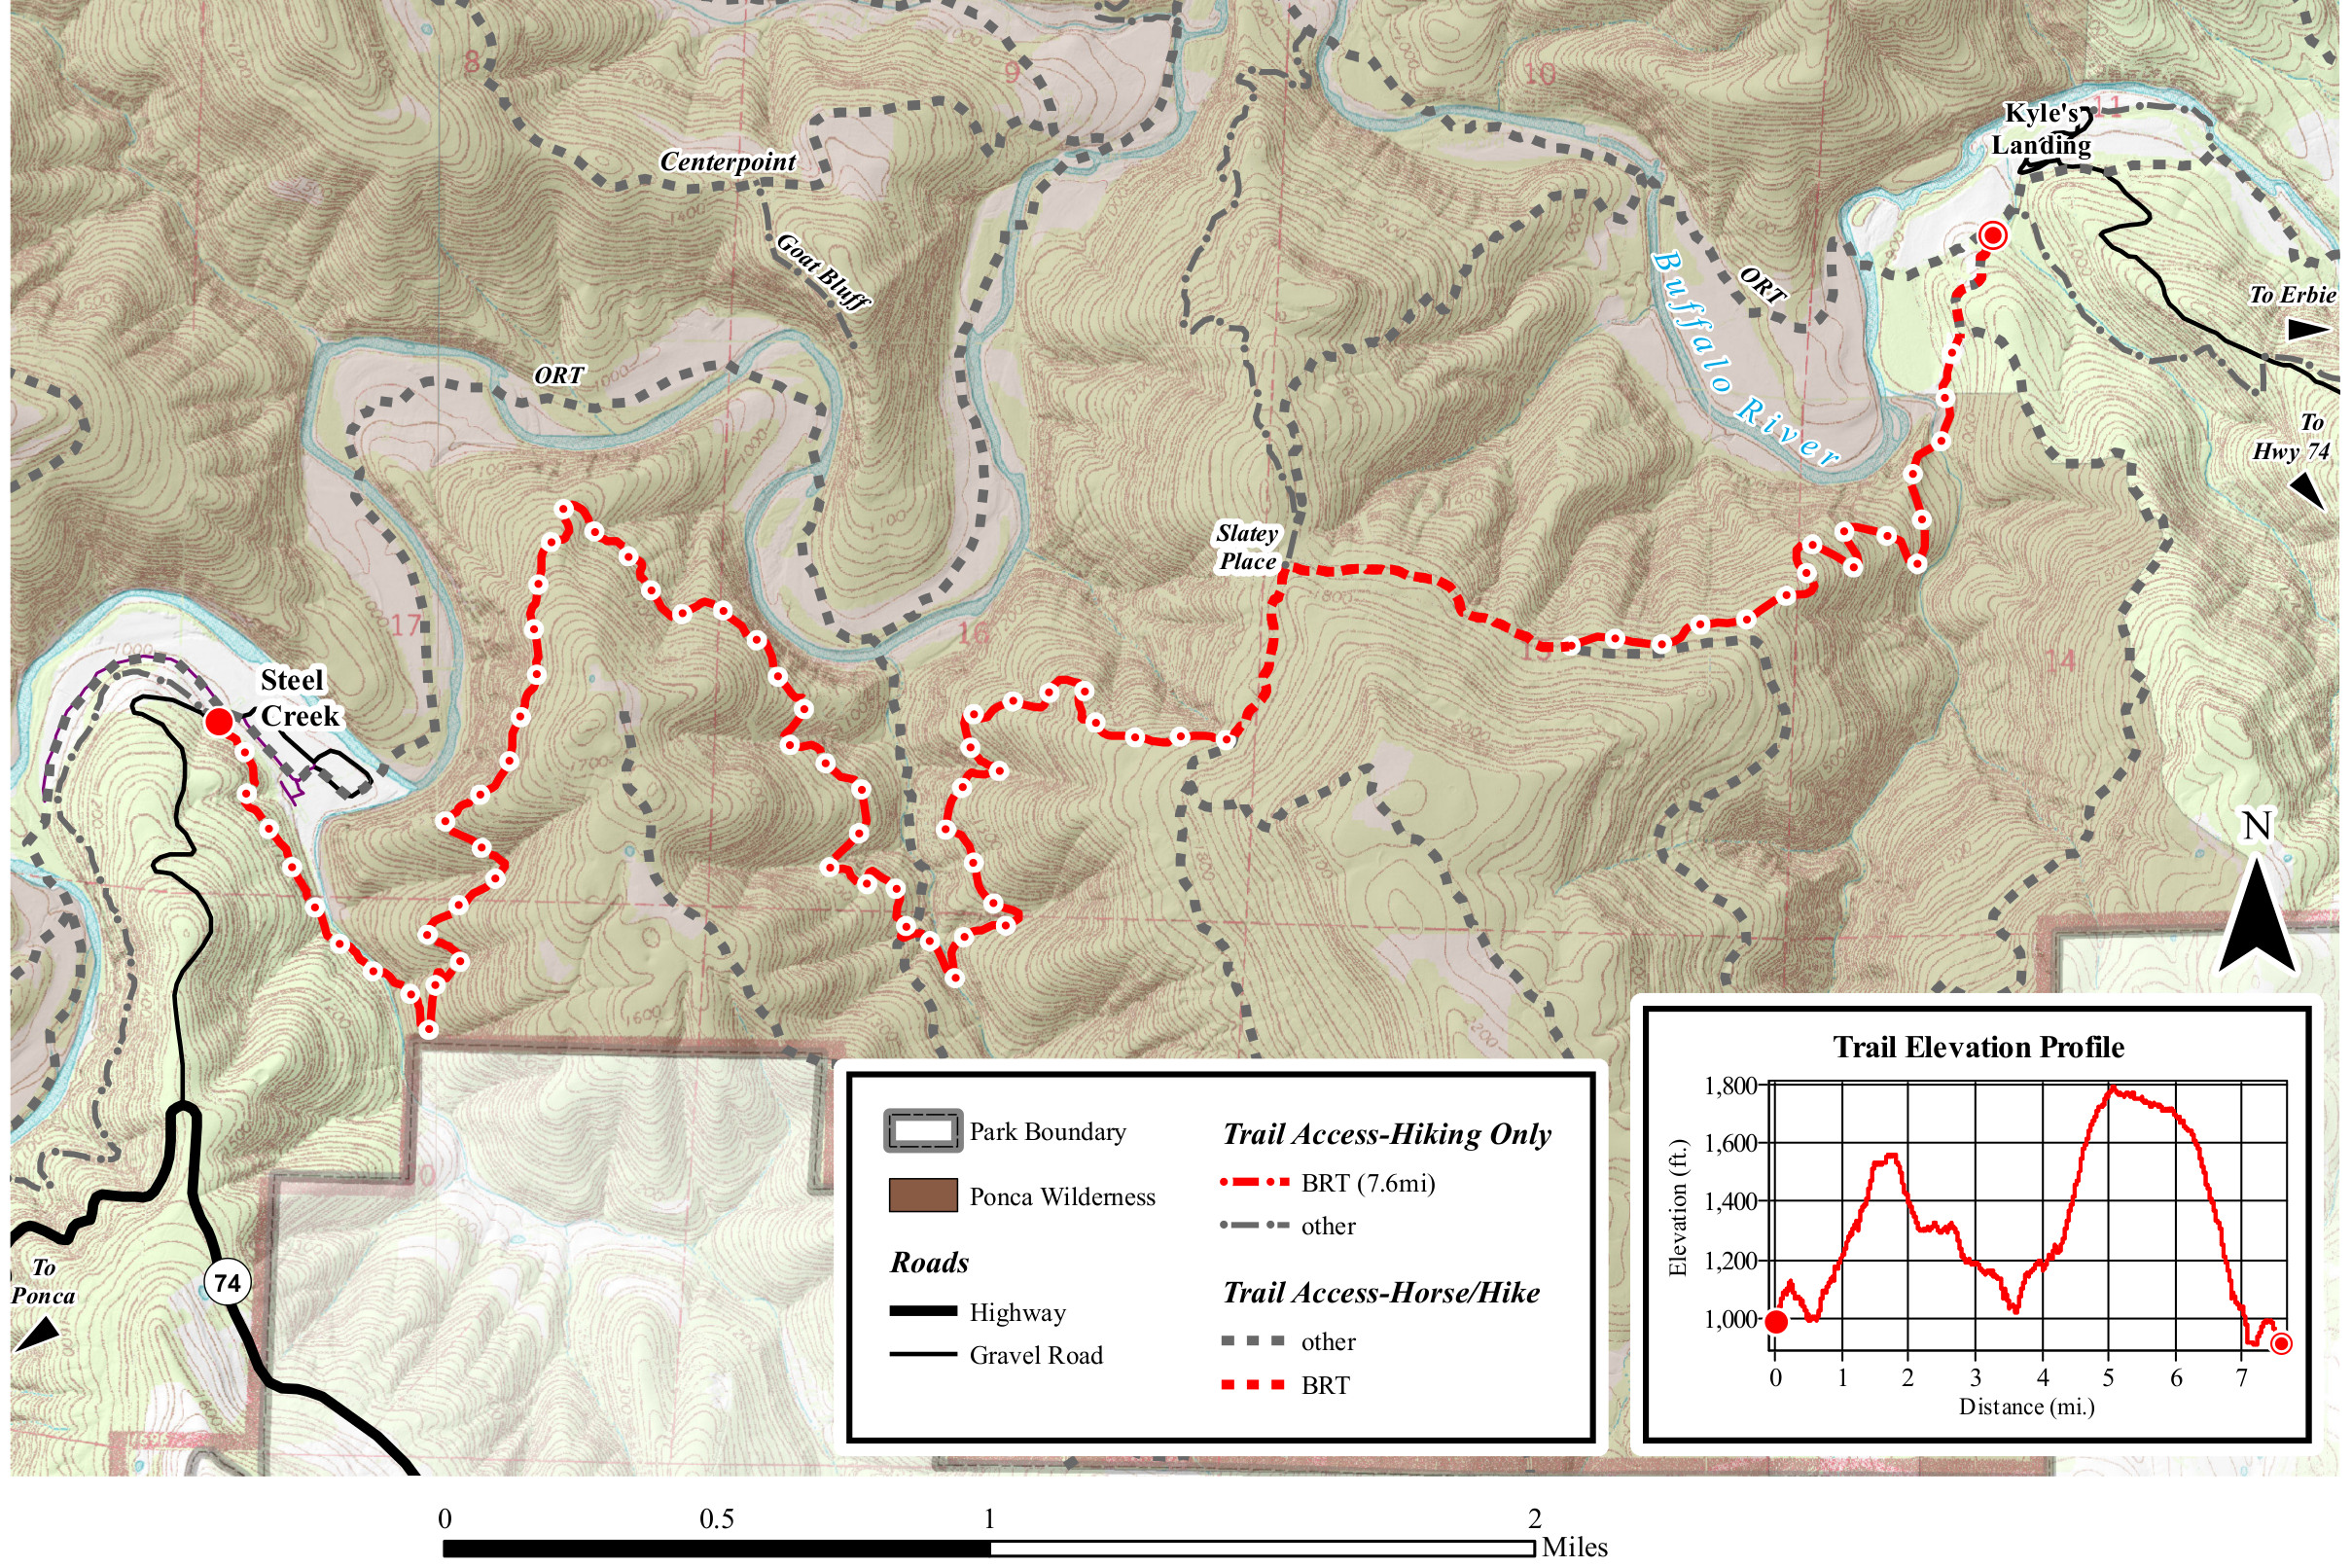 buffalo river trail map steel creek to kyle's landing. buffalo river maps  npmapscom  just free maps period